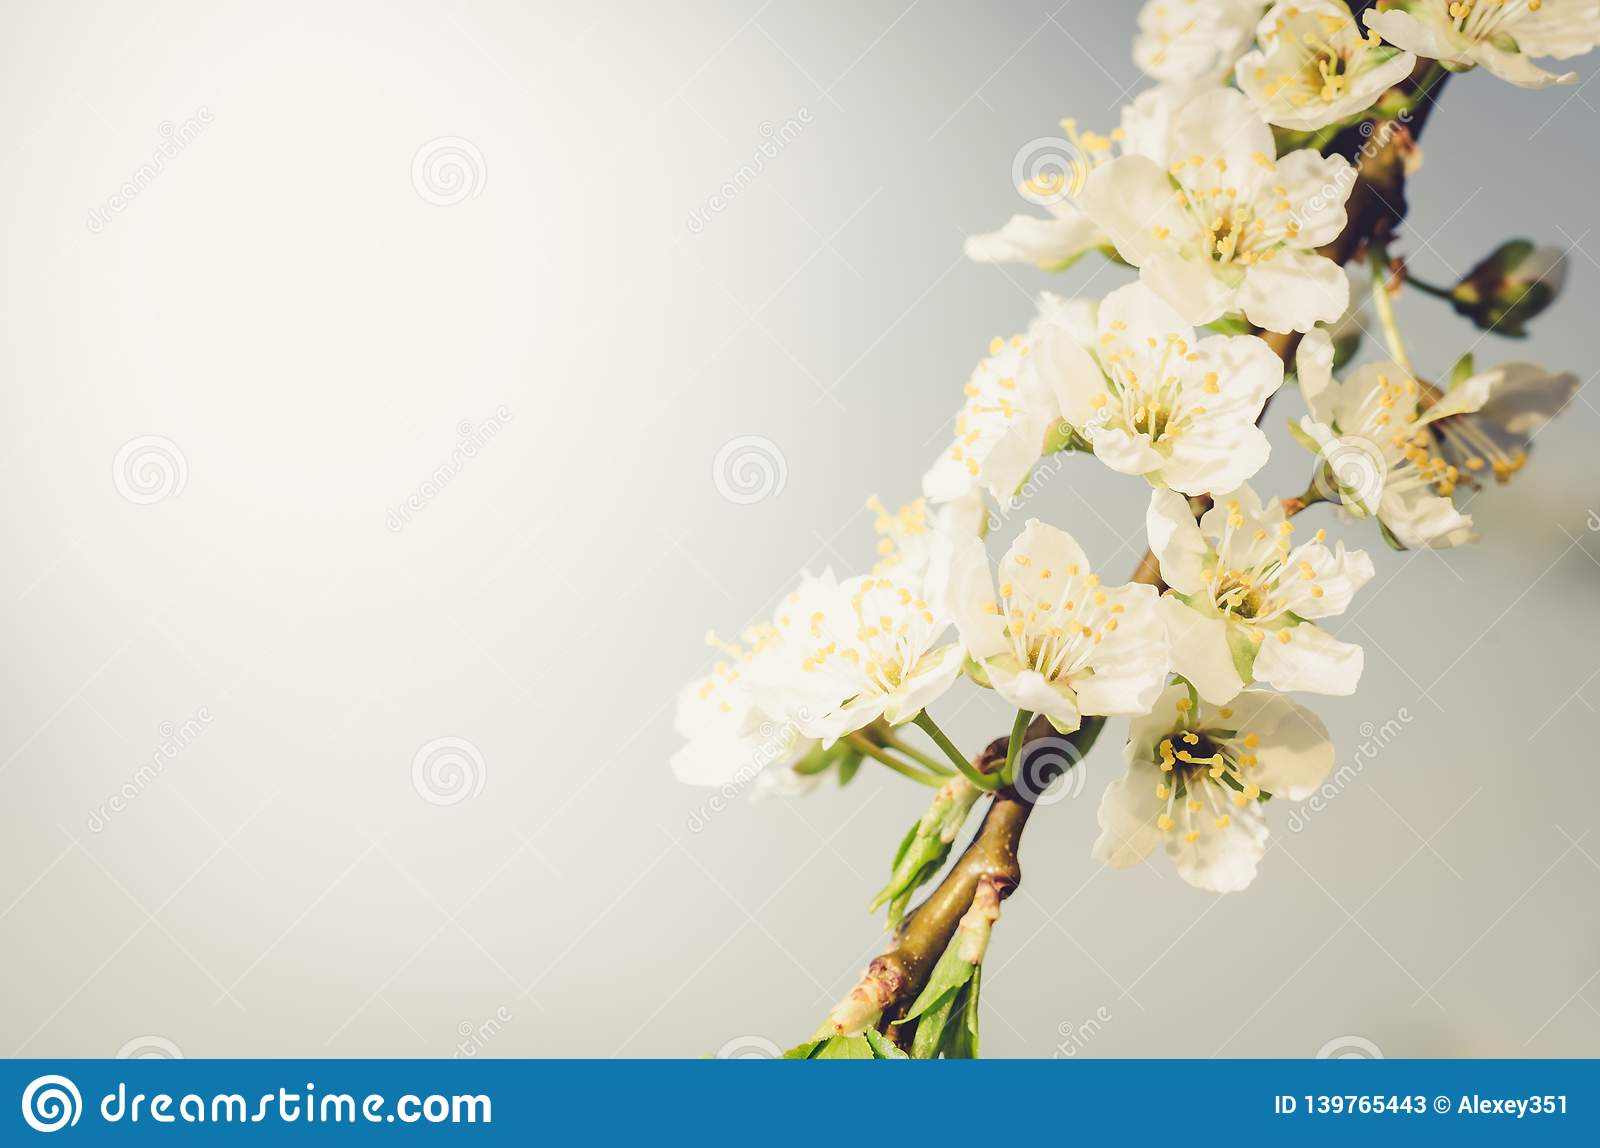 Background from branches of apple trees with white flowers on blue sky/Spring flowers. Beautiful Orchard. Spring holidays